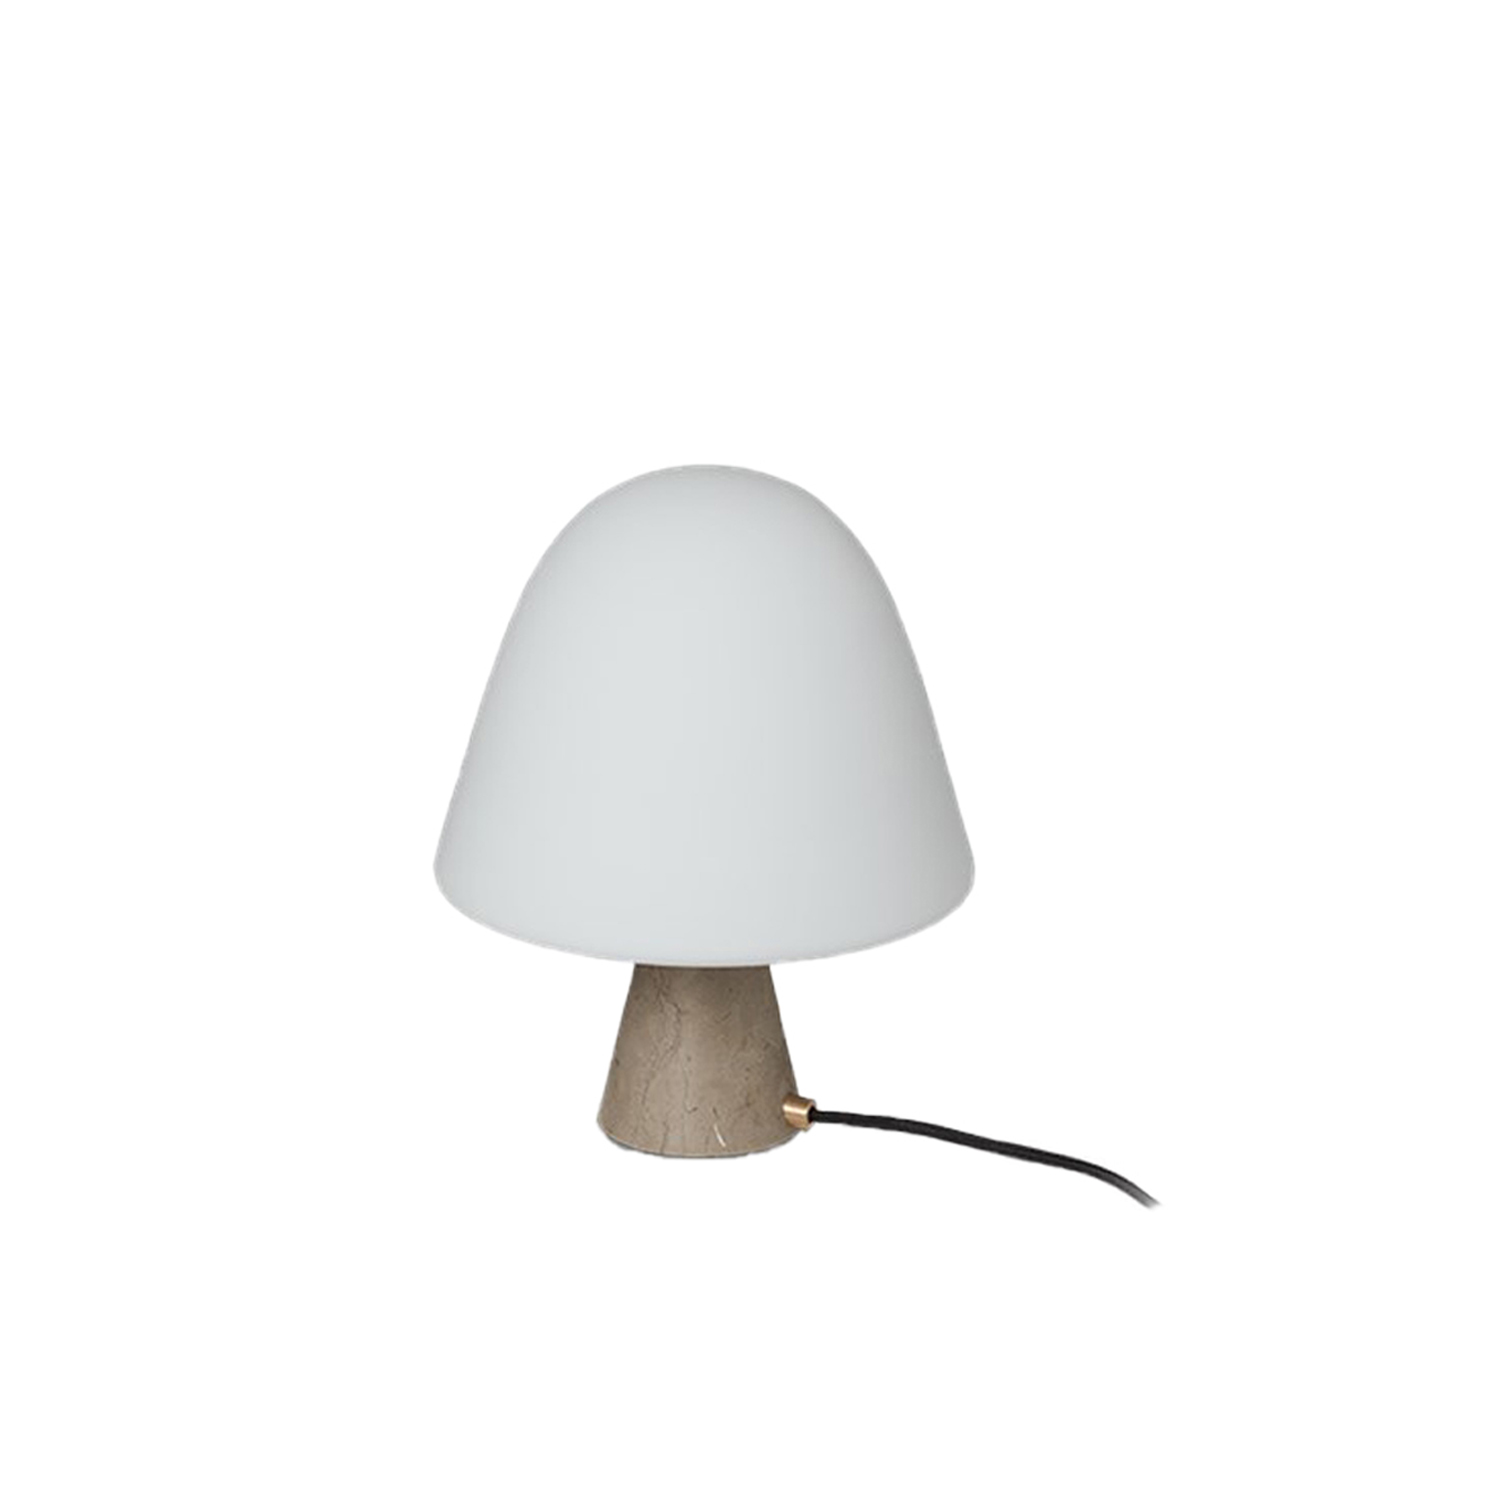 Meadow Table Lamp - Meadow is a table lamp that balance materiality with light. A simple composition of a dome-shaped shade that is mirrored in the more diminutive stone base gives Meadow an organic, unassuming look.  Fredericia introduces Complements – A new line of material-driven pieces conceived as collector's items to complement our portfolio.   Complements is a new collection of designs that join our main collection of furniture. A line of collectibles rooted in our passion for materiality comprised of functional pieces with aesthetic qualities that are equally appealing as decorative elements. From objects and small functional furniture to hidden gems from our archives with a renewed relevance.   With Complements, we expand on our expertise with materiality to encompass a range of accessories and furnishings that - together with our line of furniture - create a look and feel for an entire interior or concept.   Drawing on our legacy of working with wood and leather, we've explored other materials with textures, colours and compositions that bring an extra dimension to the atmosphere. The result is a celebration of materiality in well-considered concepts that are refined, authentic, inviting and crafted to last.   We're always open to designers, where we feel a strong connection with their work and a mutual mindset. For Complements, we've engaged with the next wave of new talent in Denmark and abroad. Both new and established names, who share our affinity for honest materials and purposeful design.   Complements remains true to our design heritage at Fredericia while staying in tune with the world at large. Each piece is distinctive, yet they all reflect our pioneering spirit to create essentials with presence and permanence.   Collectibles to cherish now – and for generations to come. | Matter of Stuff